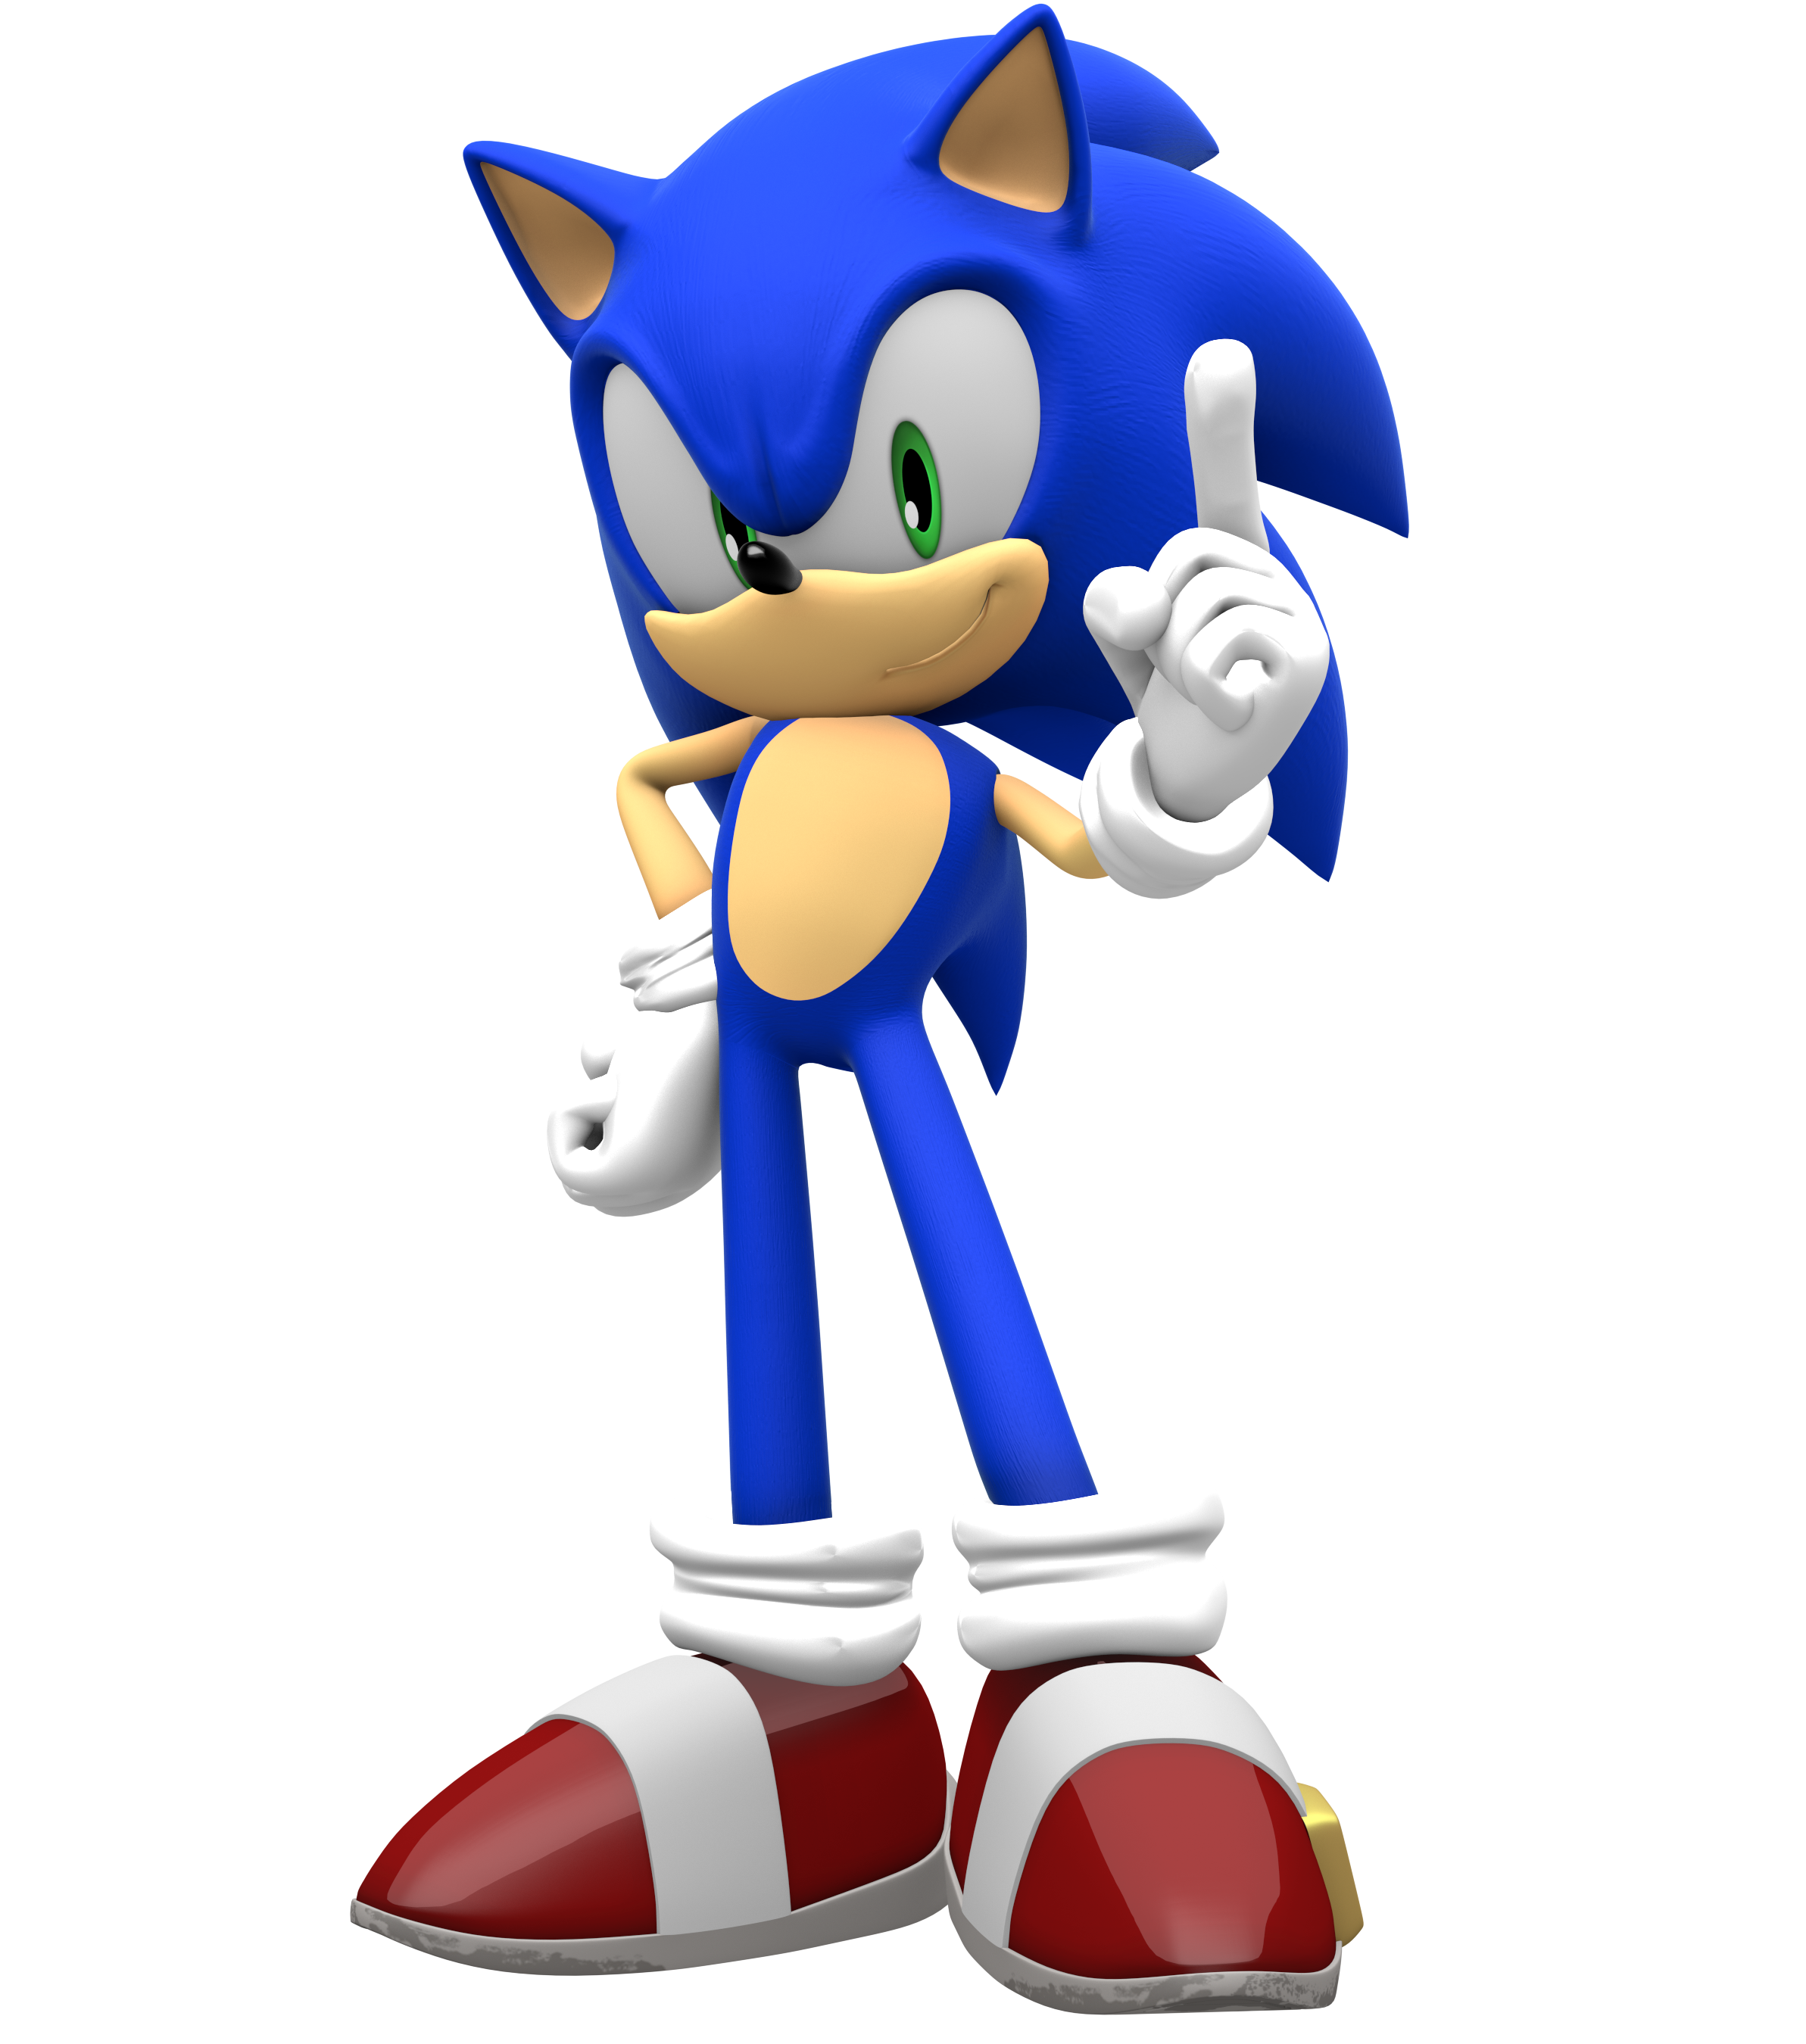 sonic full on sonicuniverses group deviantart. Black Bedroom Furniture Sets. Home Design Ideas